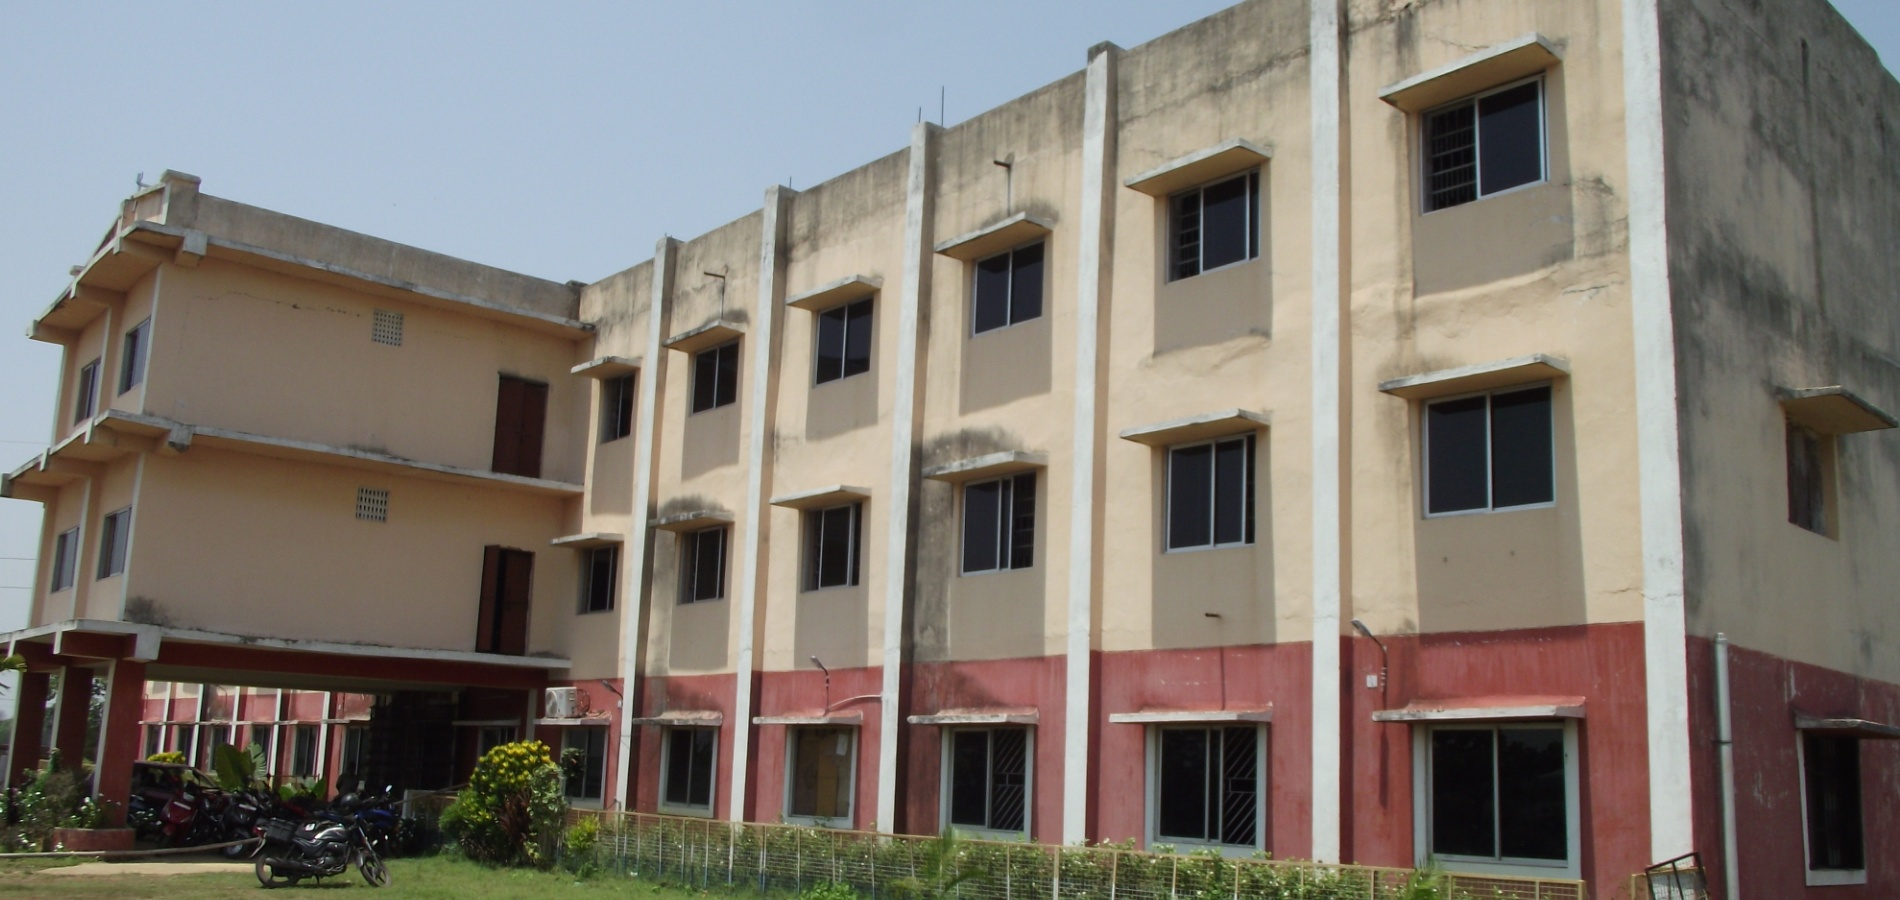 BAJIROUT INSTITUTE OF ENGINEERING AND TECHNOLOGY (POLYTECHNIC)